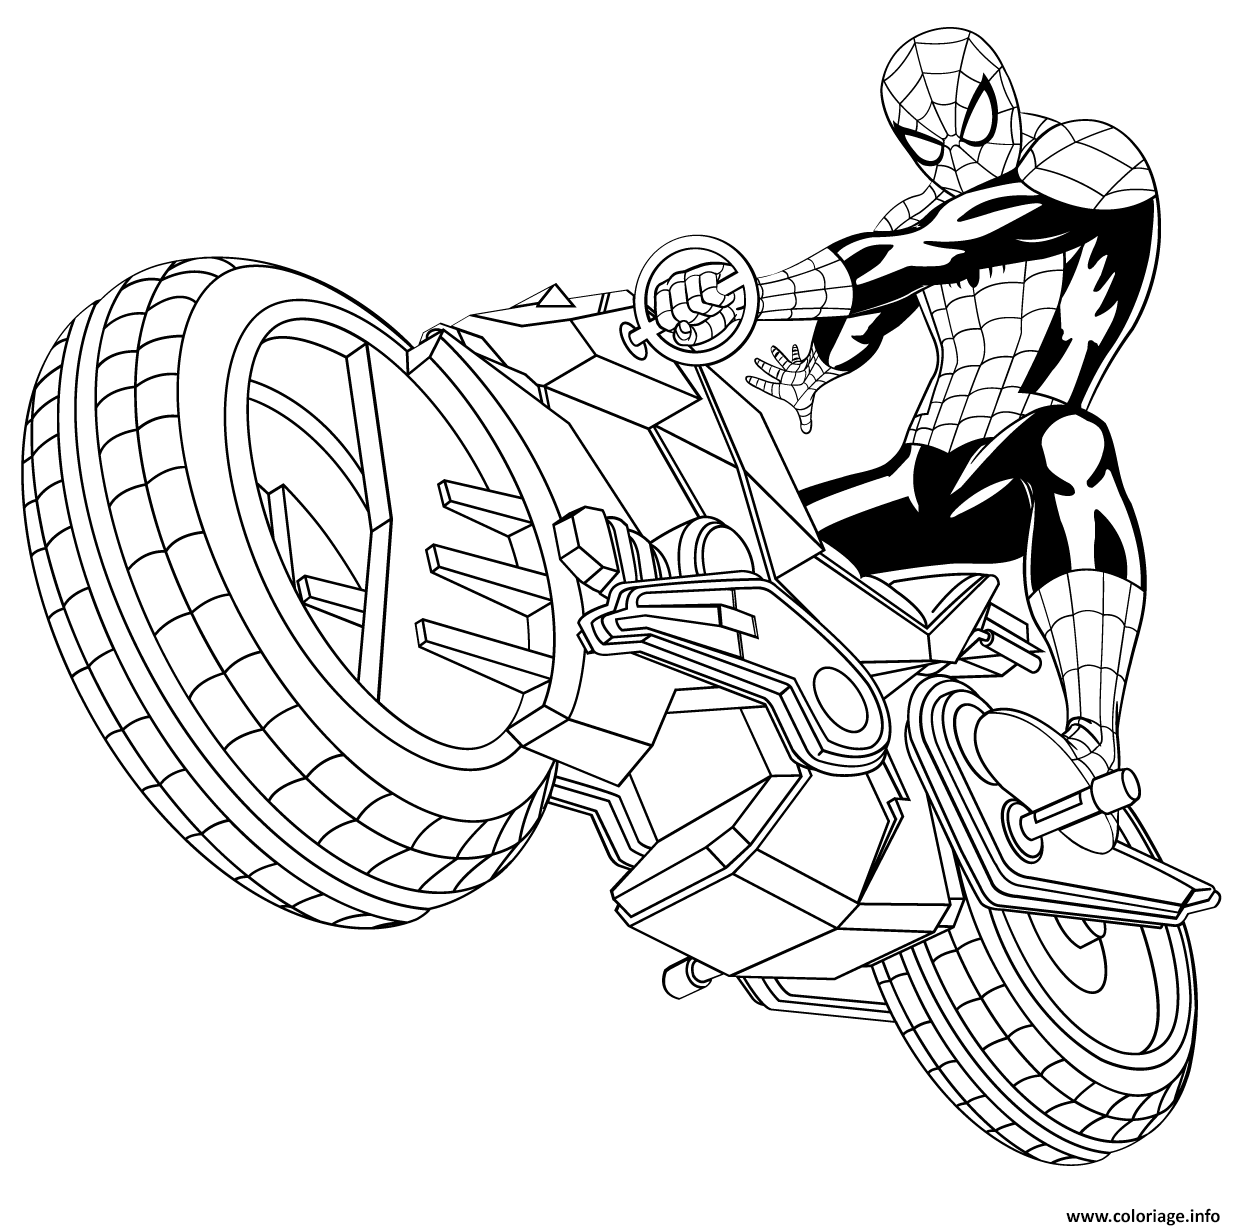 Coloriage spiderman avec sa spider moto auto tres rapide dessin - Dessiner spiderman facile ...